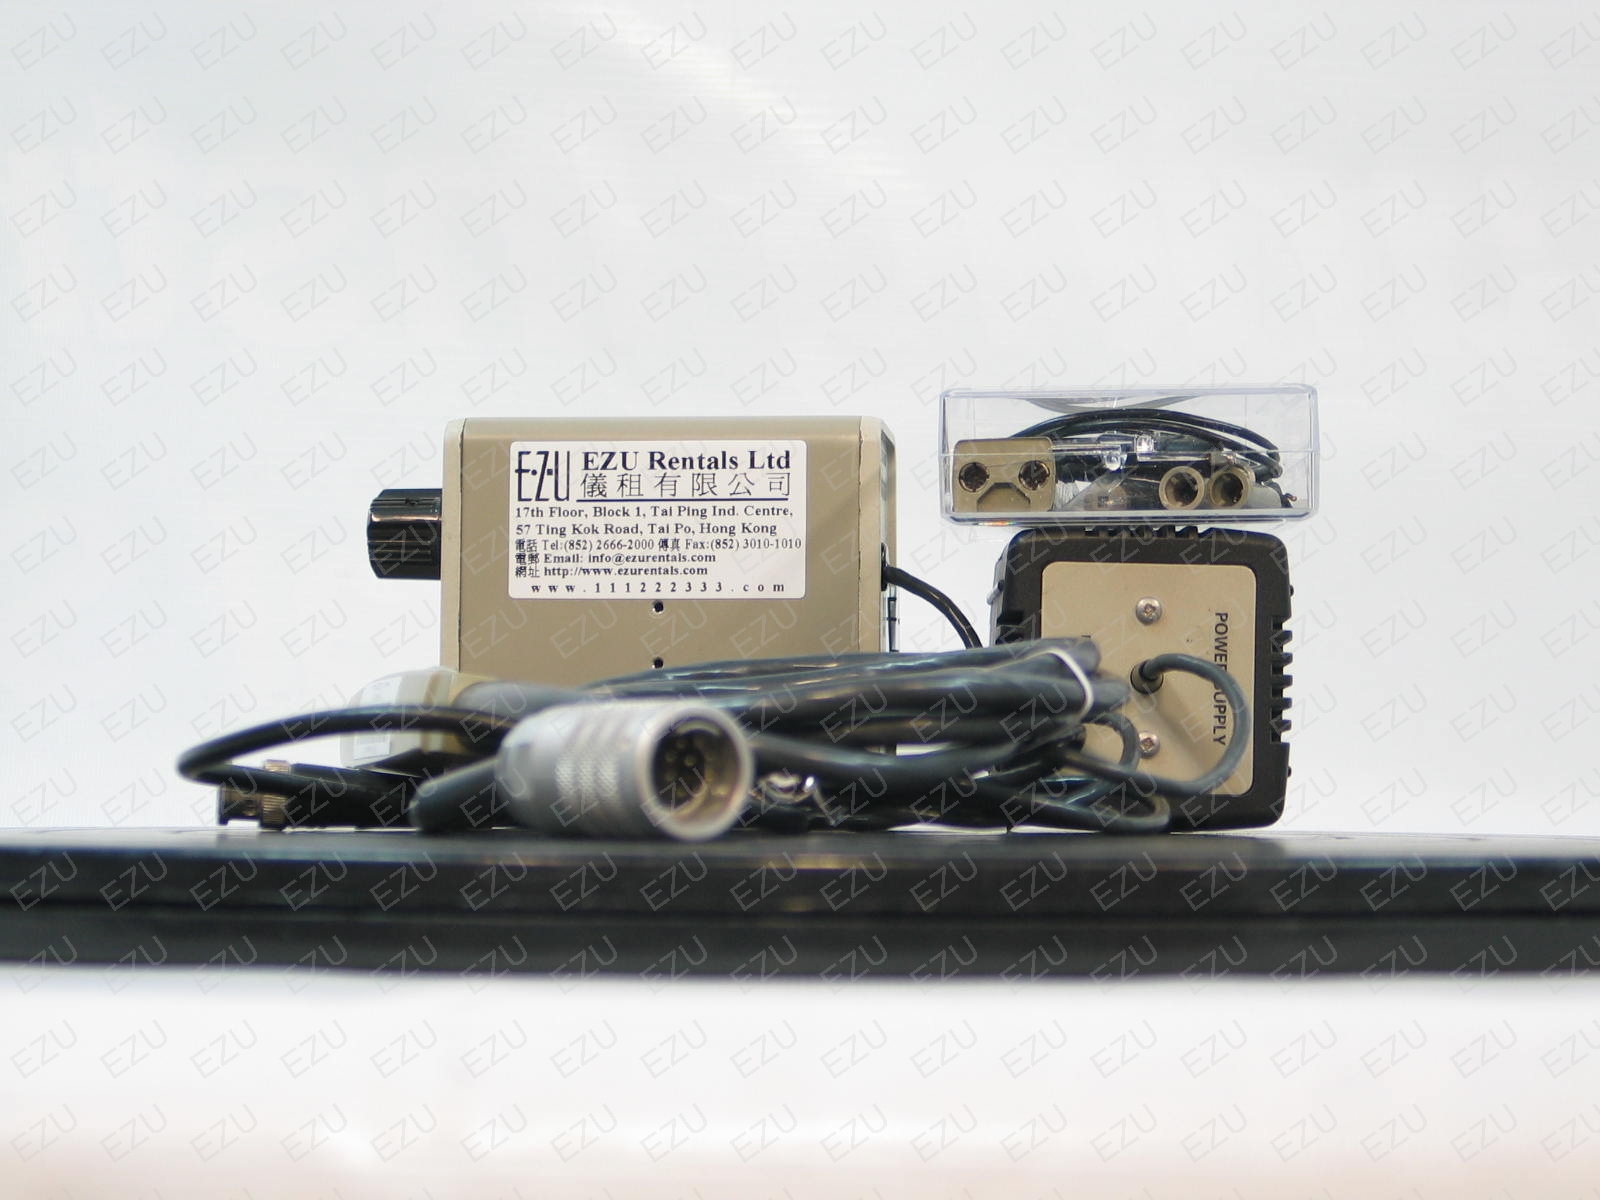 Tektronix P6046 - Left Photo